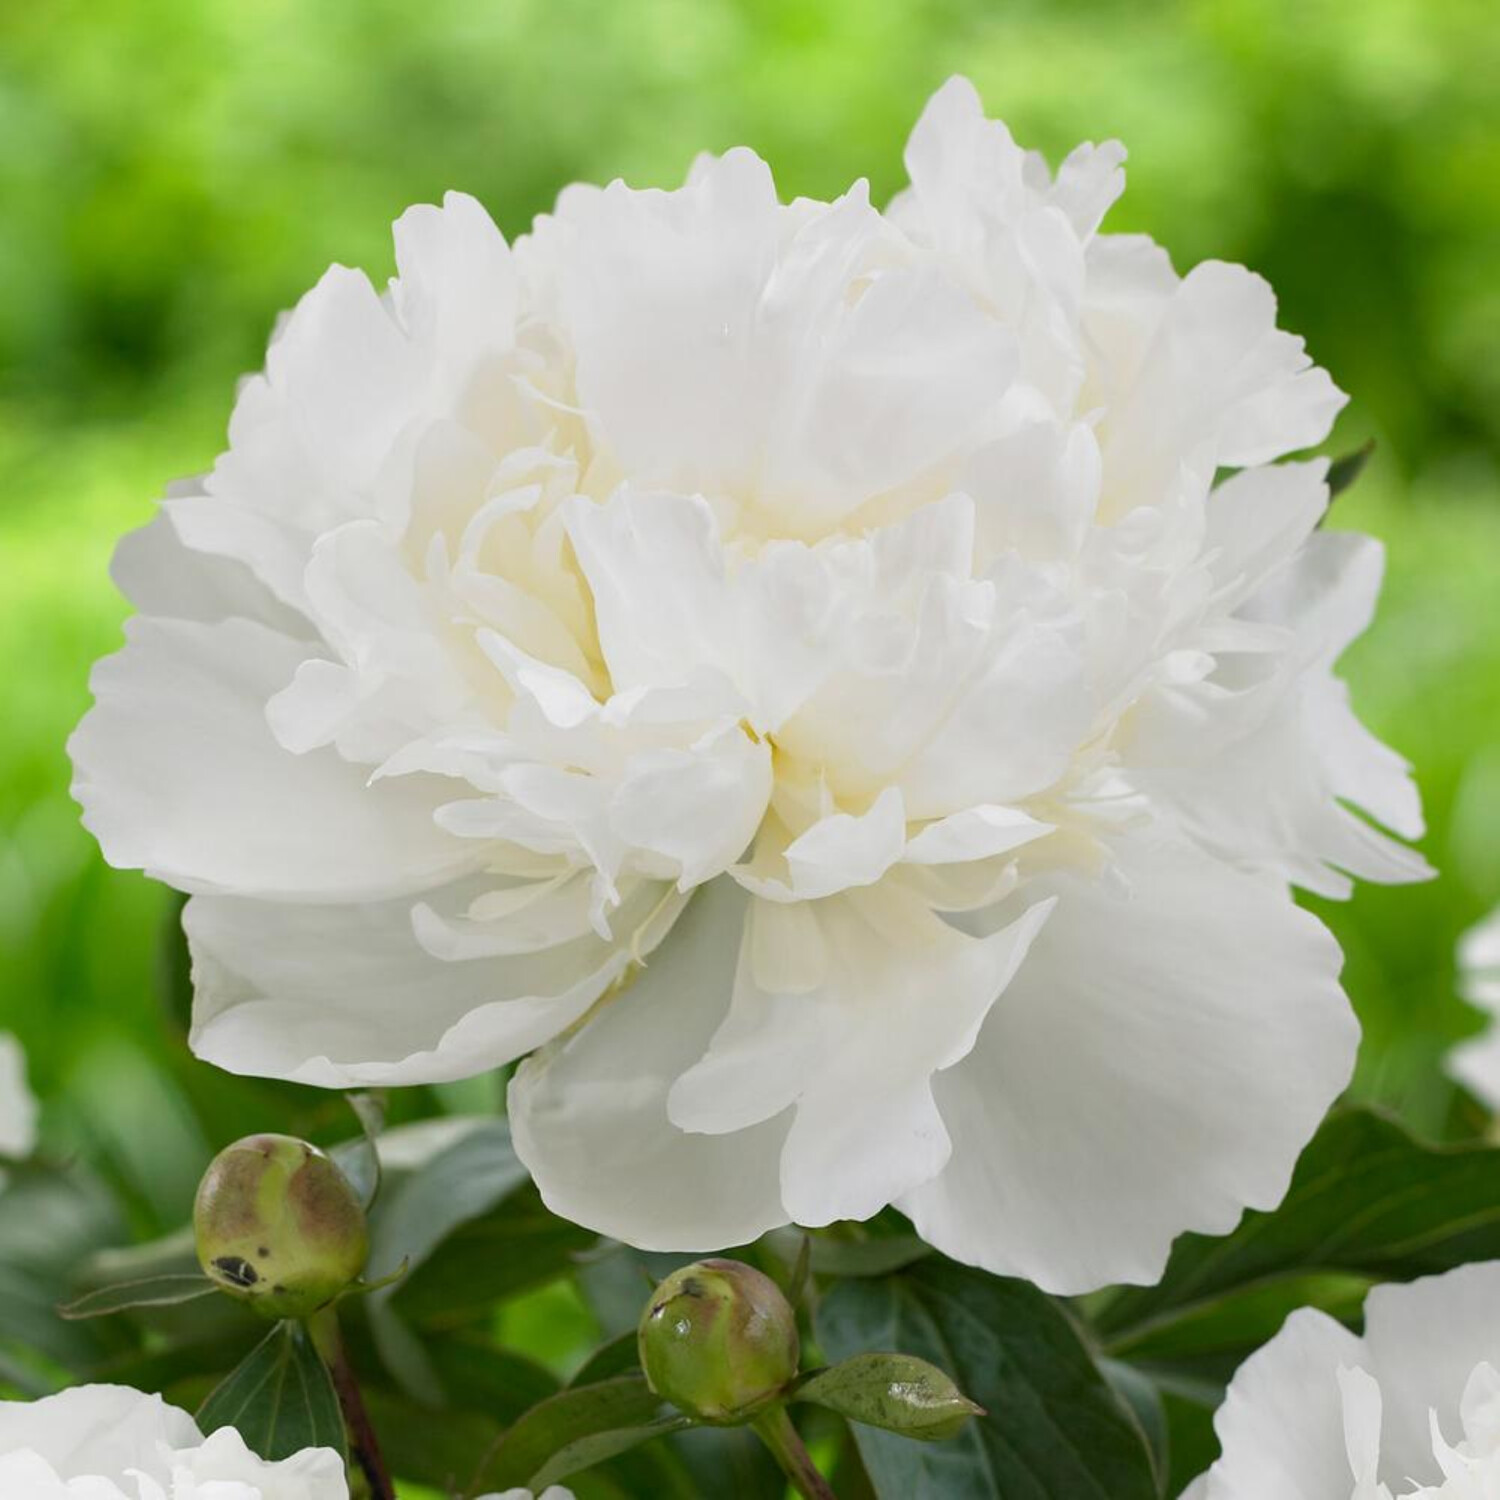 Tree Peony, Paeonia suffruticosa, Shrub Seeds